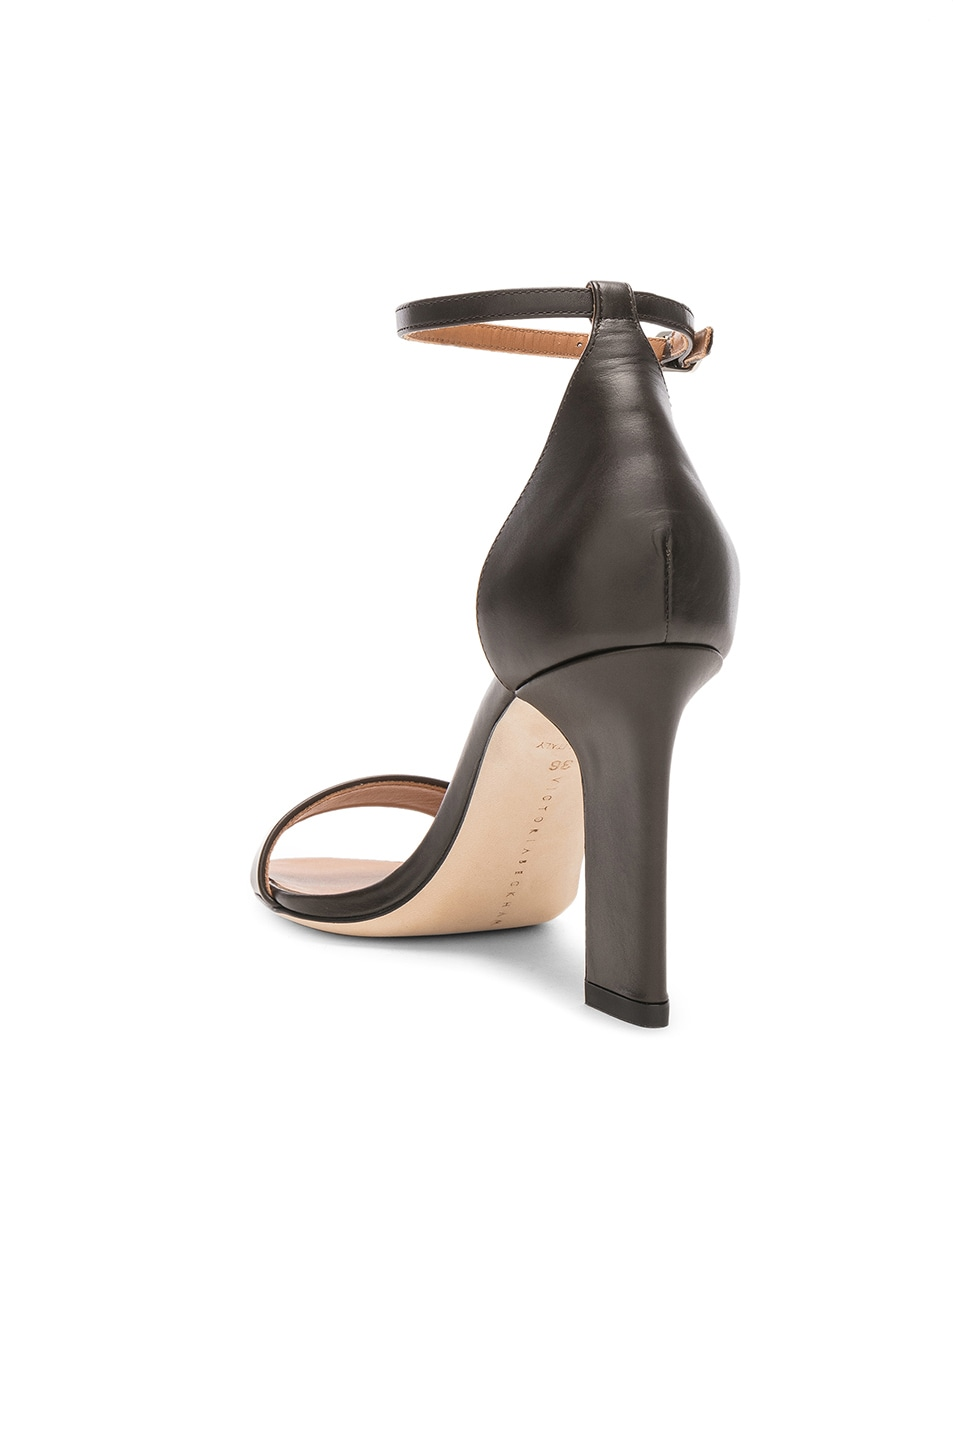 Image 3 of Victoria Beckham Leather Anna Ankle Strap Sandals in Khaki